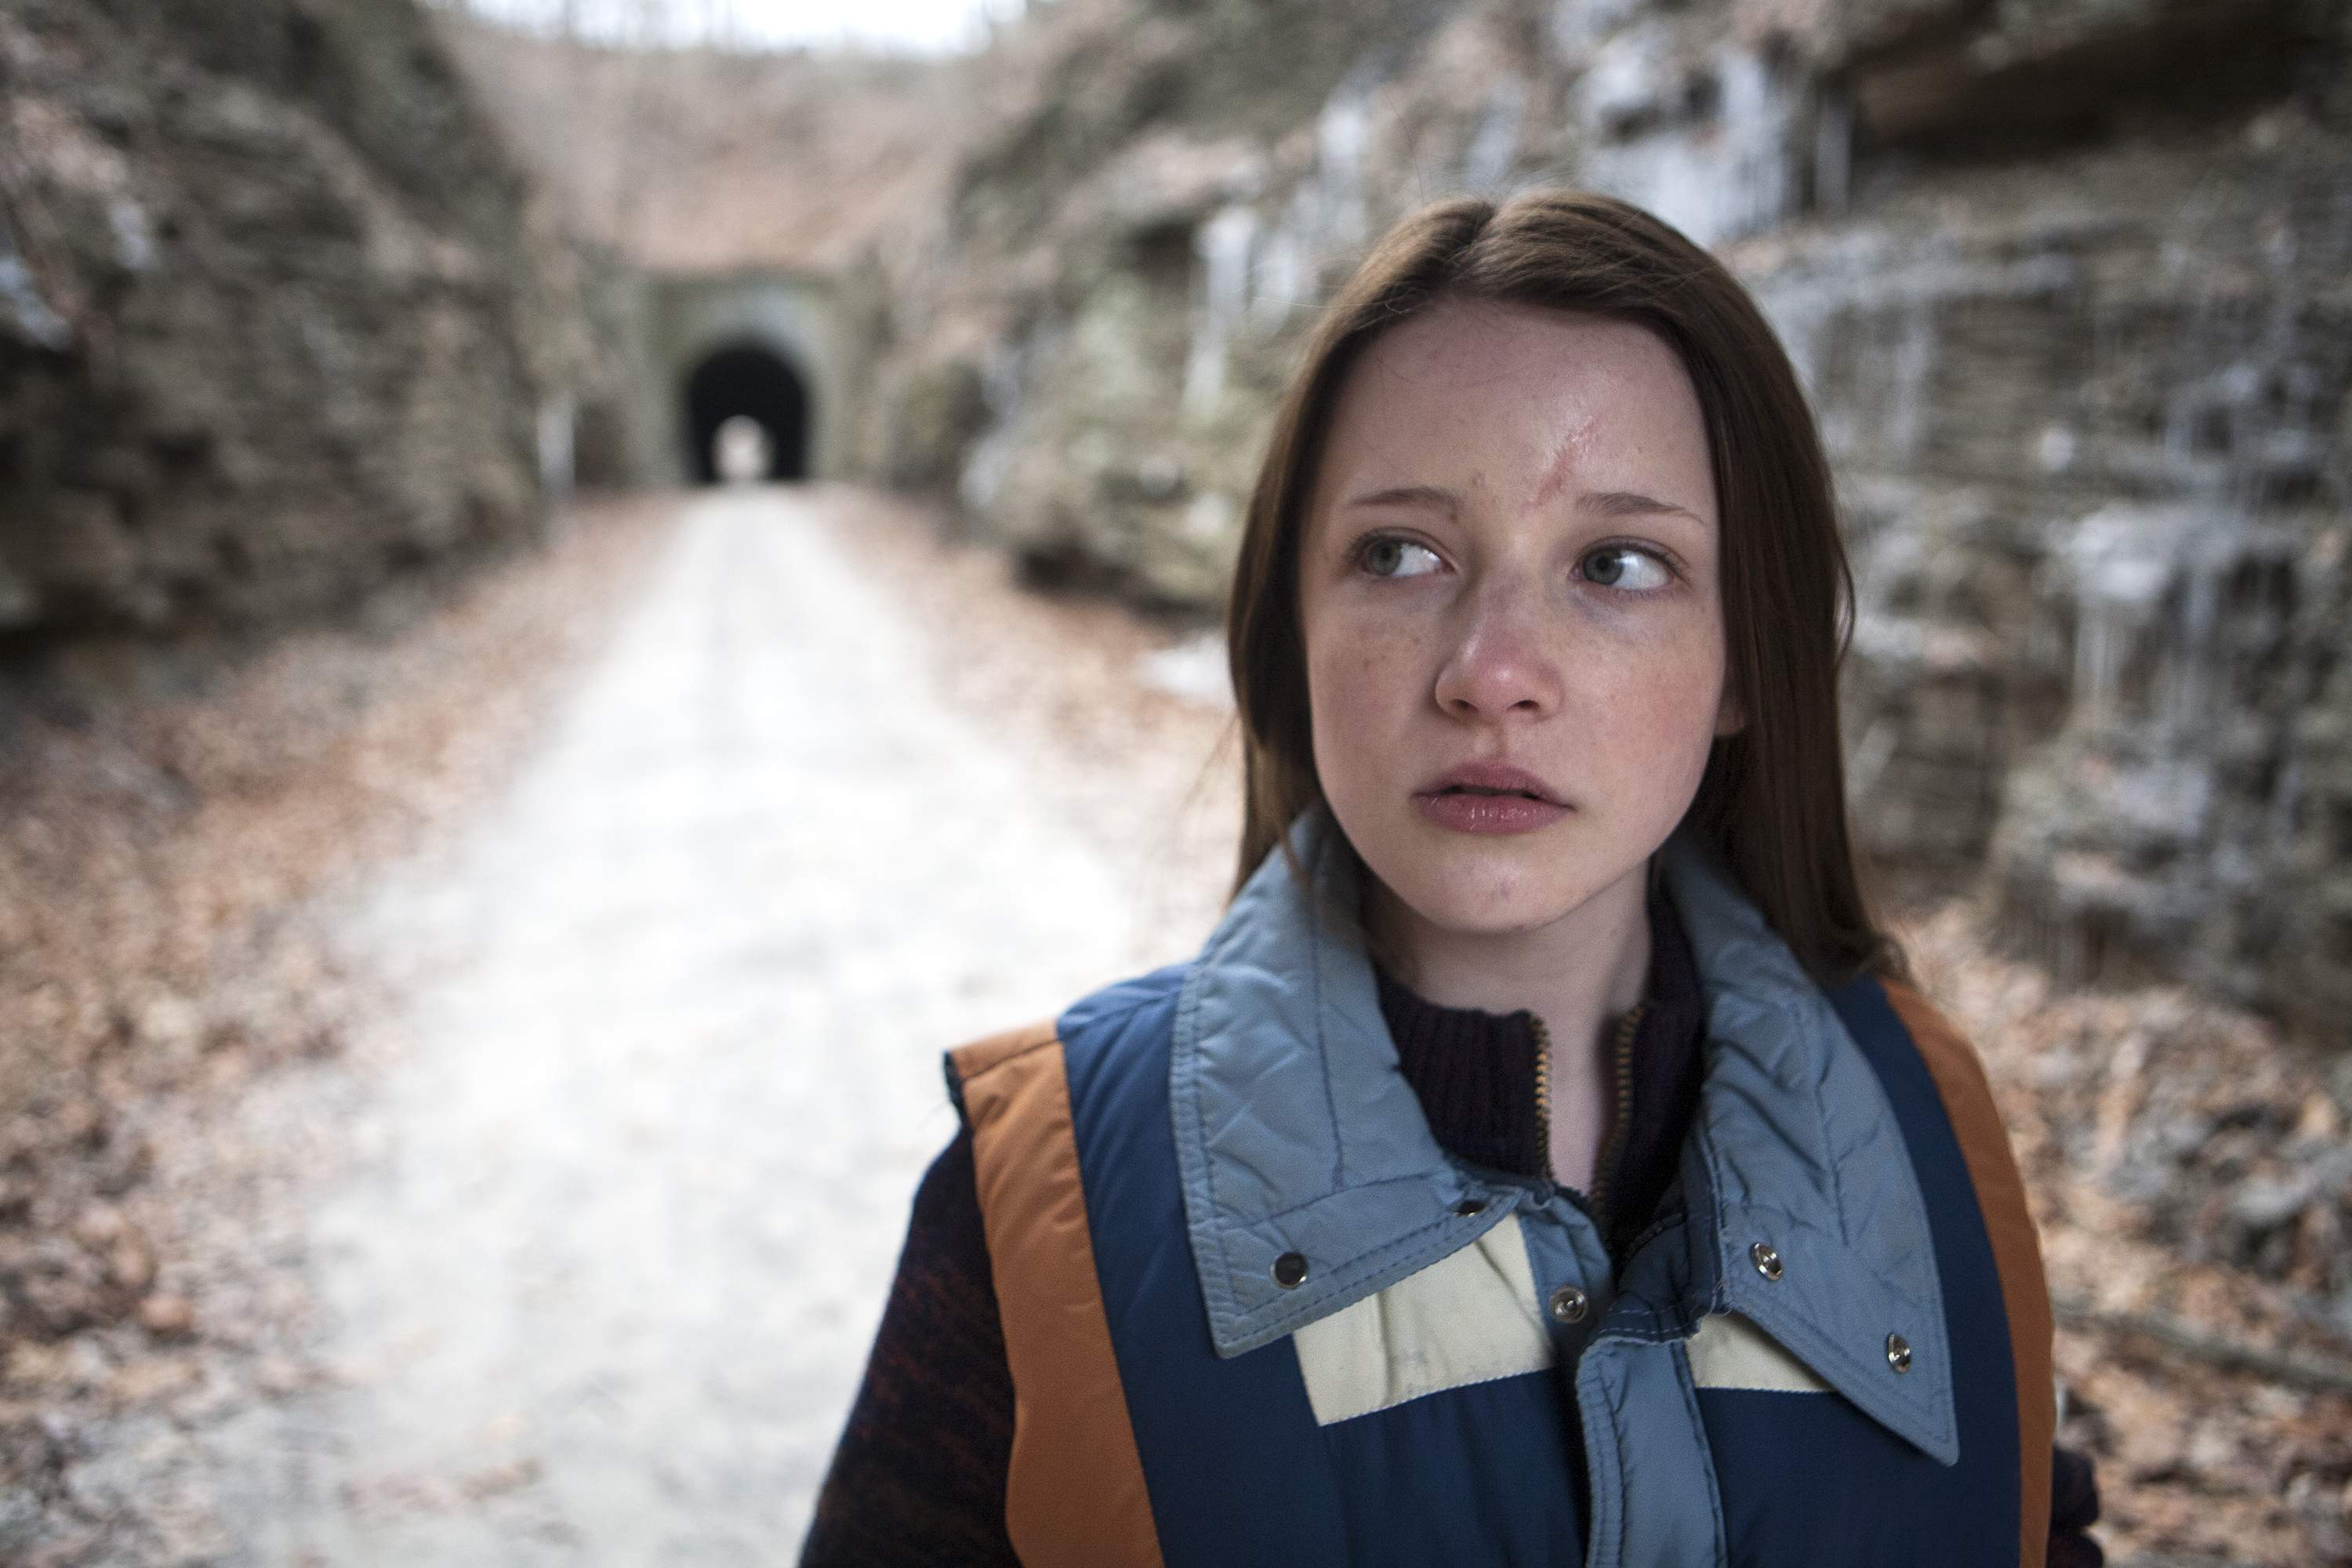 Actress Samantha Isler (playing Jake Mather) is shown in a scene shot on the Tunnel Hill State Trail in Johnson County.